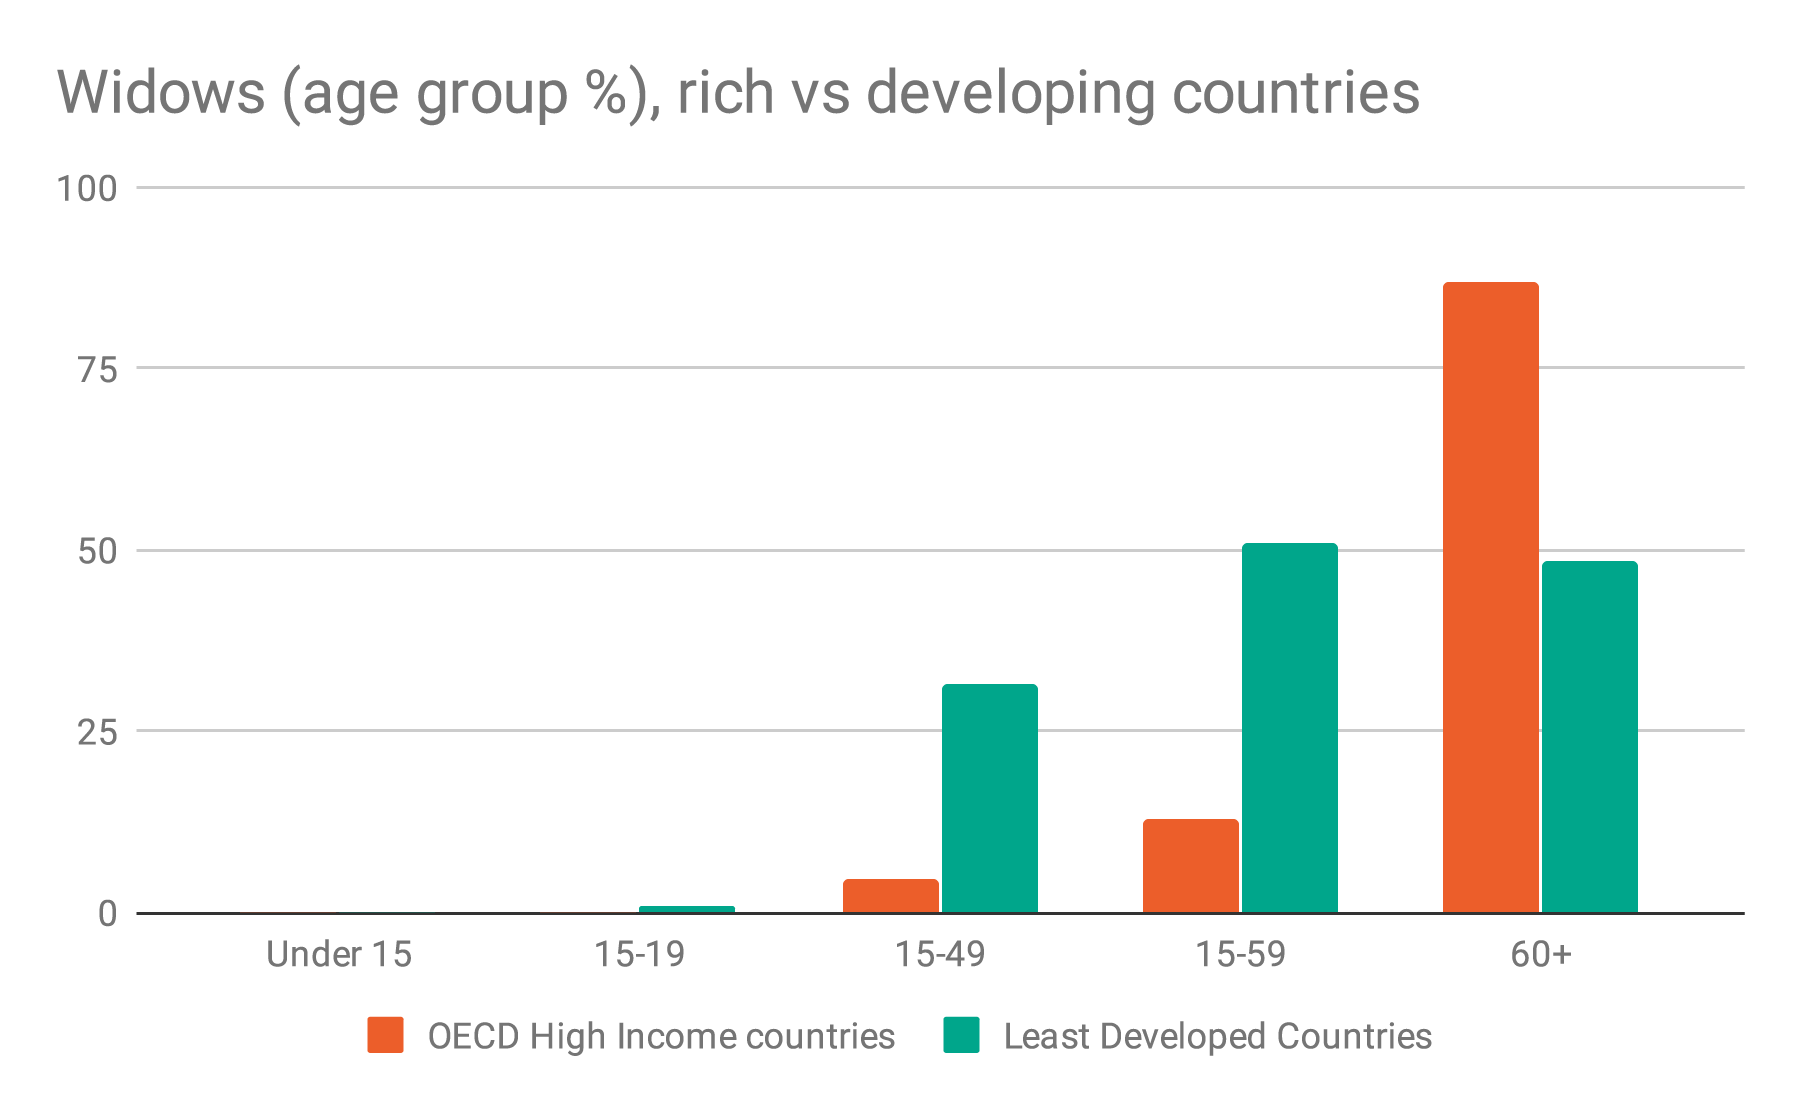 Widows rich vs developing countries